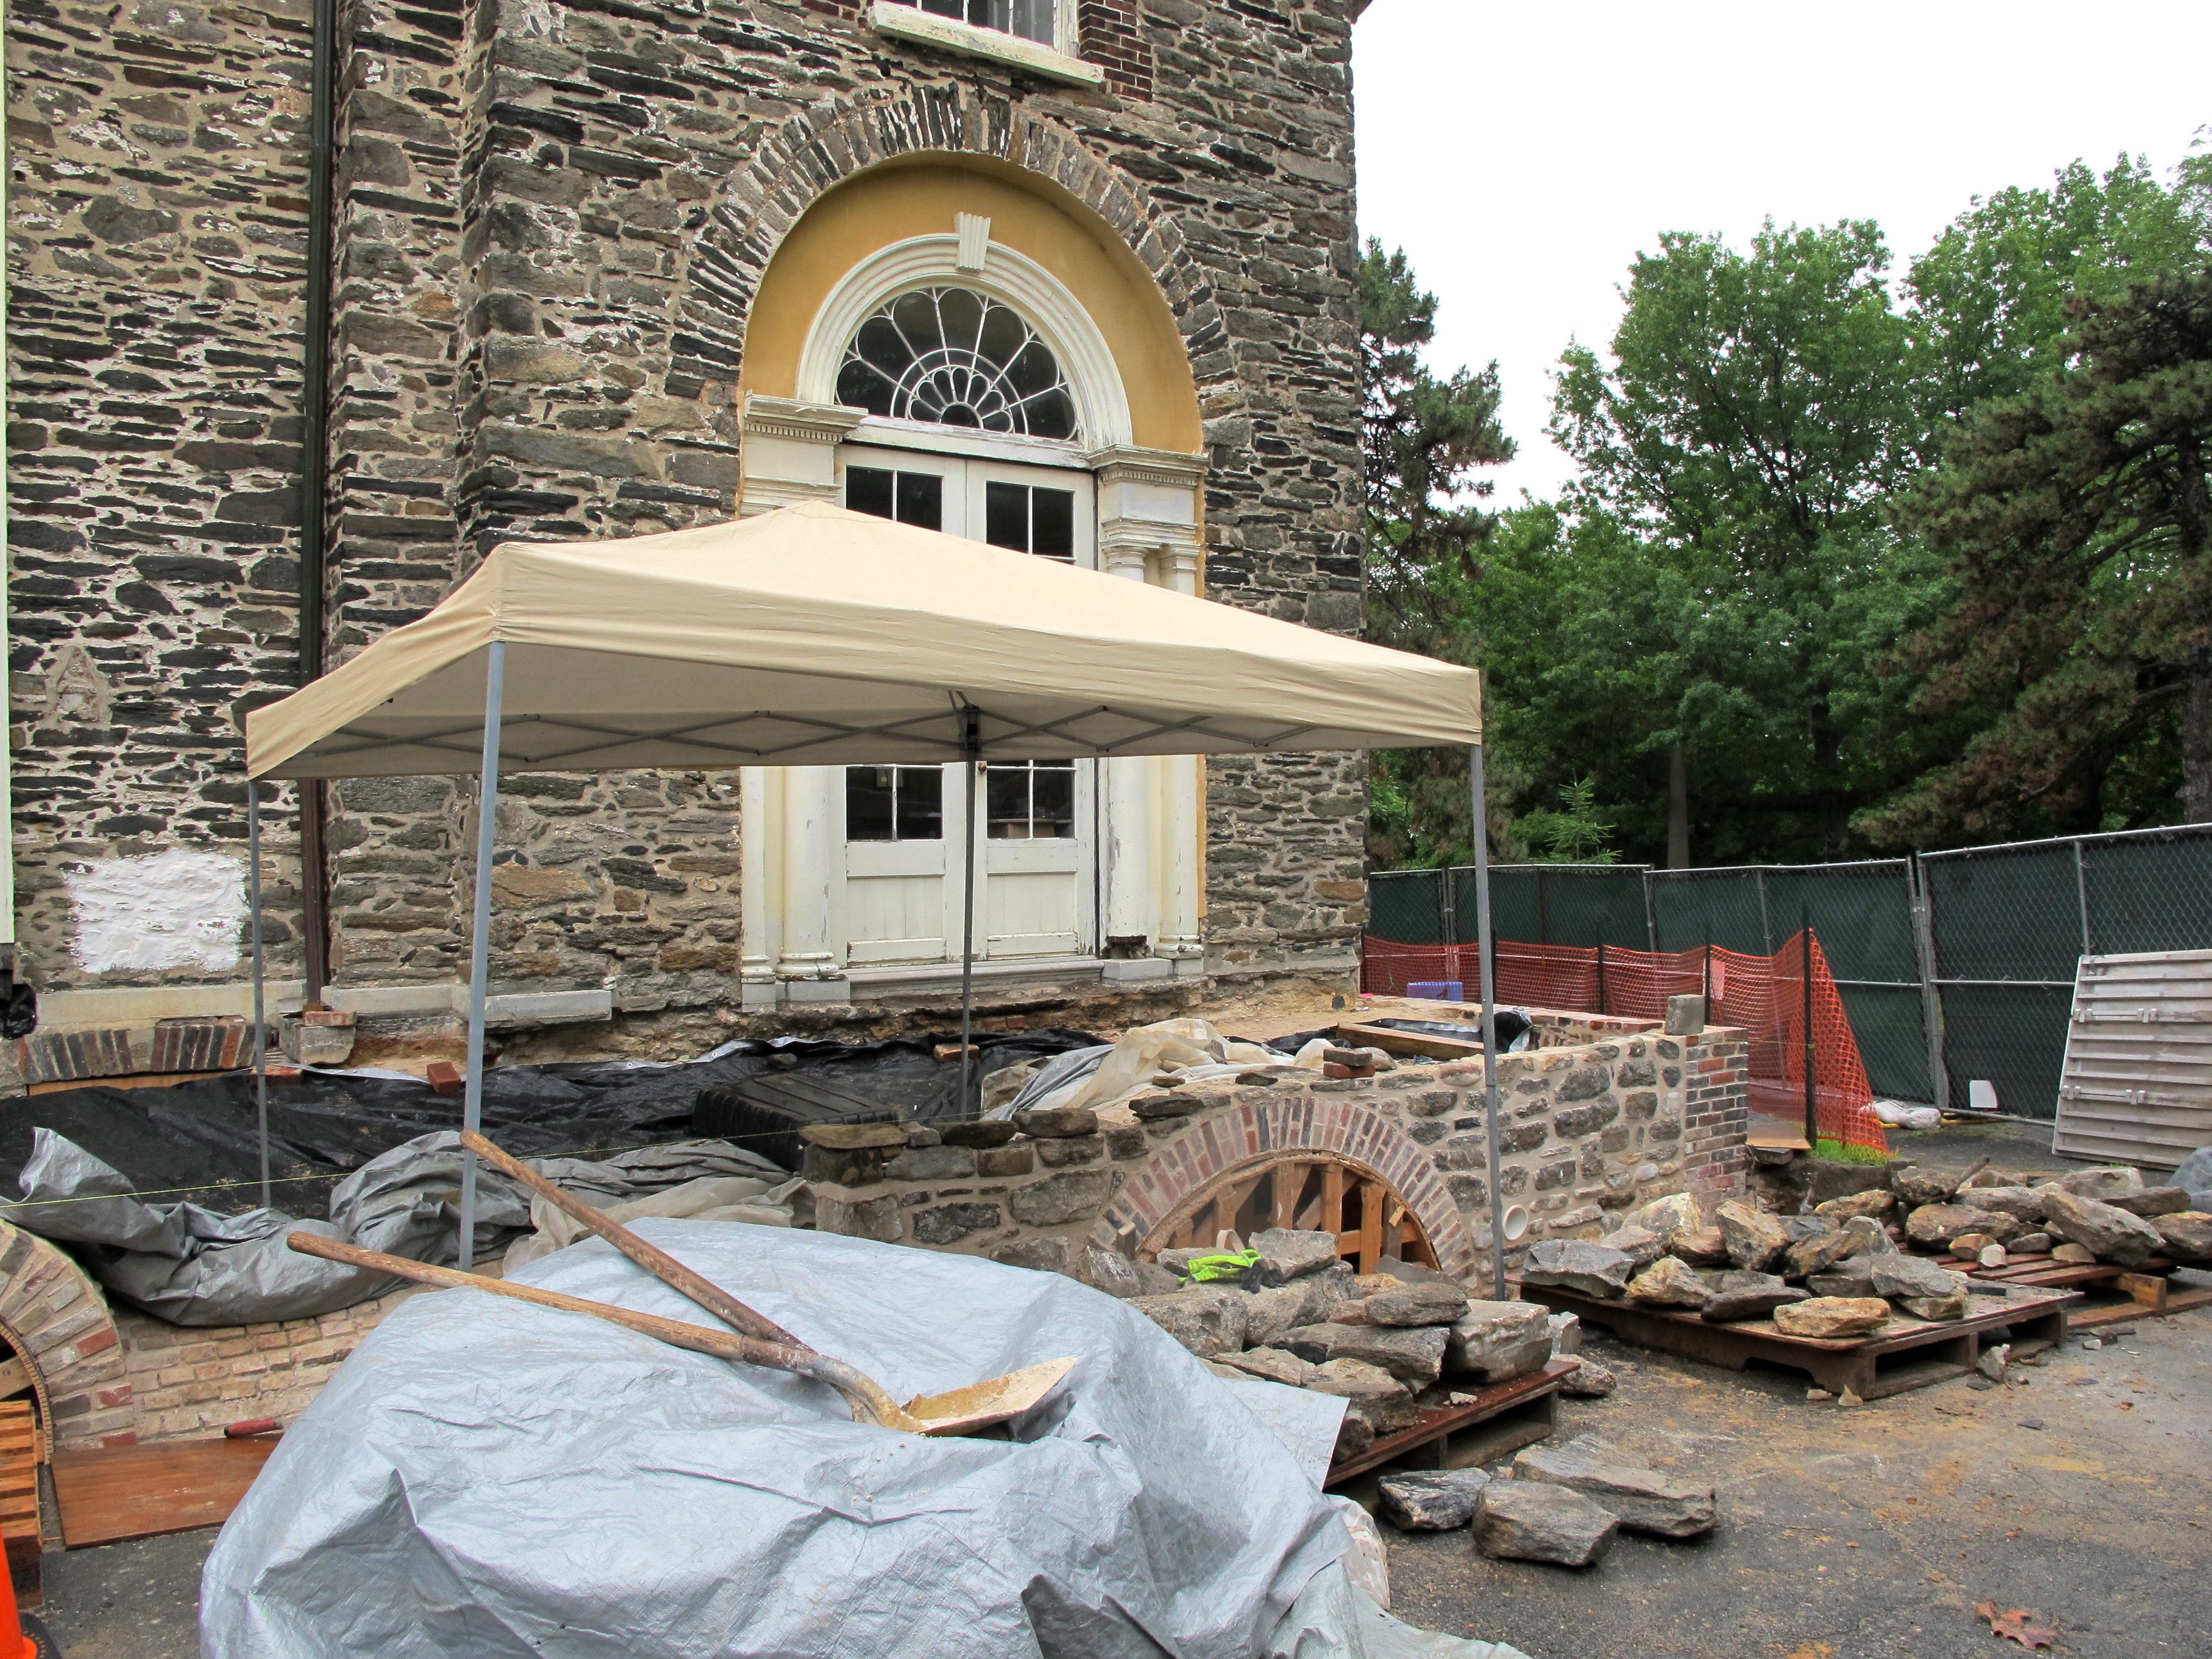 North terrace and cryptoporticus reconstruction underway at The Woodlands, Spring 2015